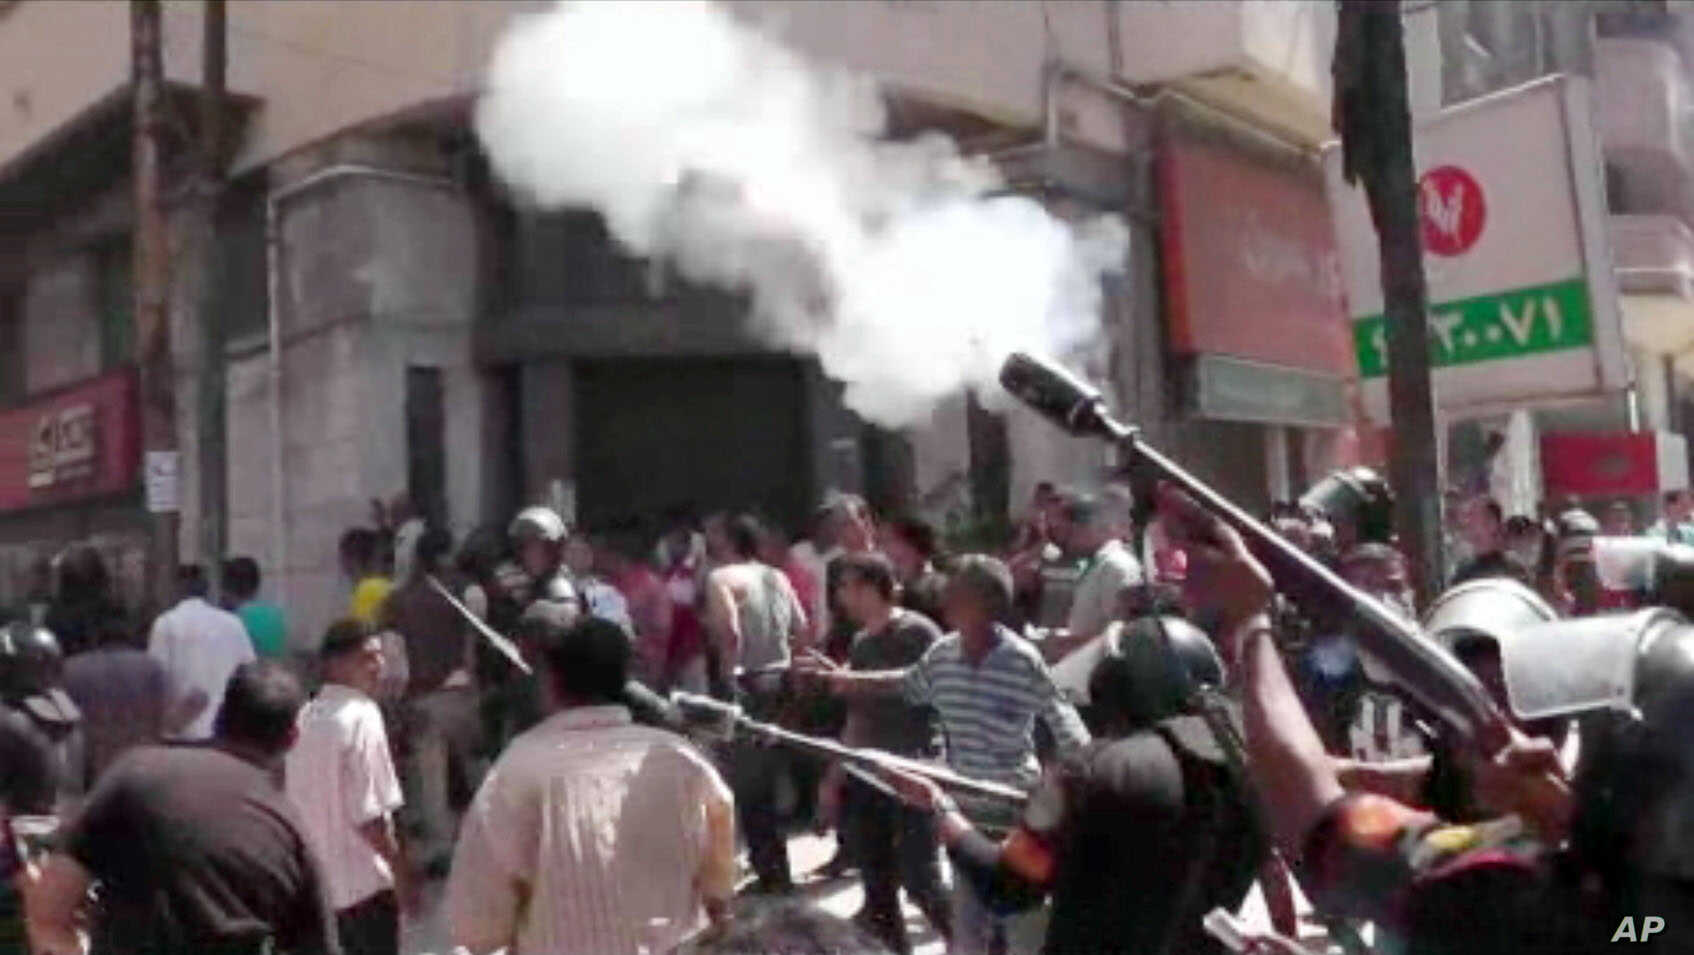 An image made from video shows police firing tear gas at supporters of ousted President Mohammed Morsi in Alexandria, Egypt, Aug. 14, 2013.